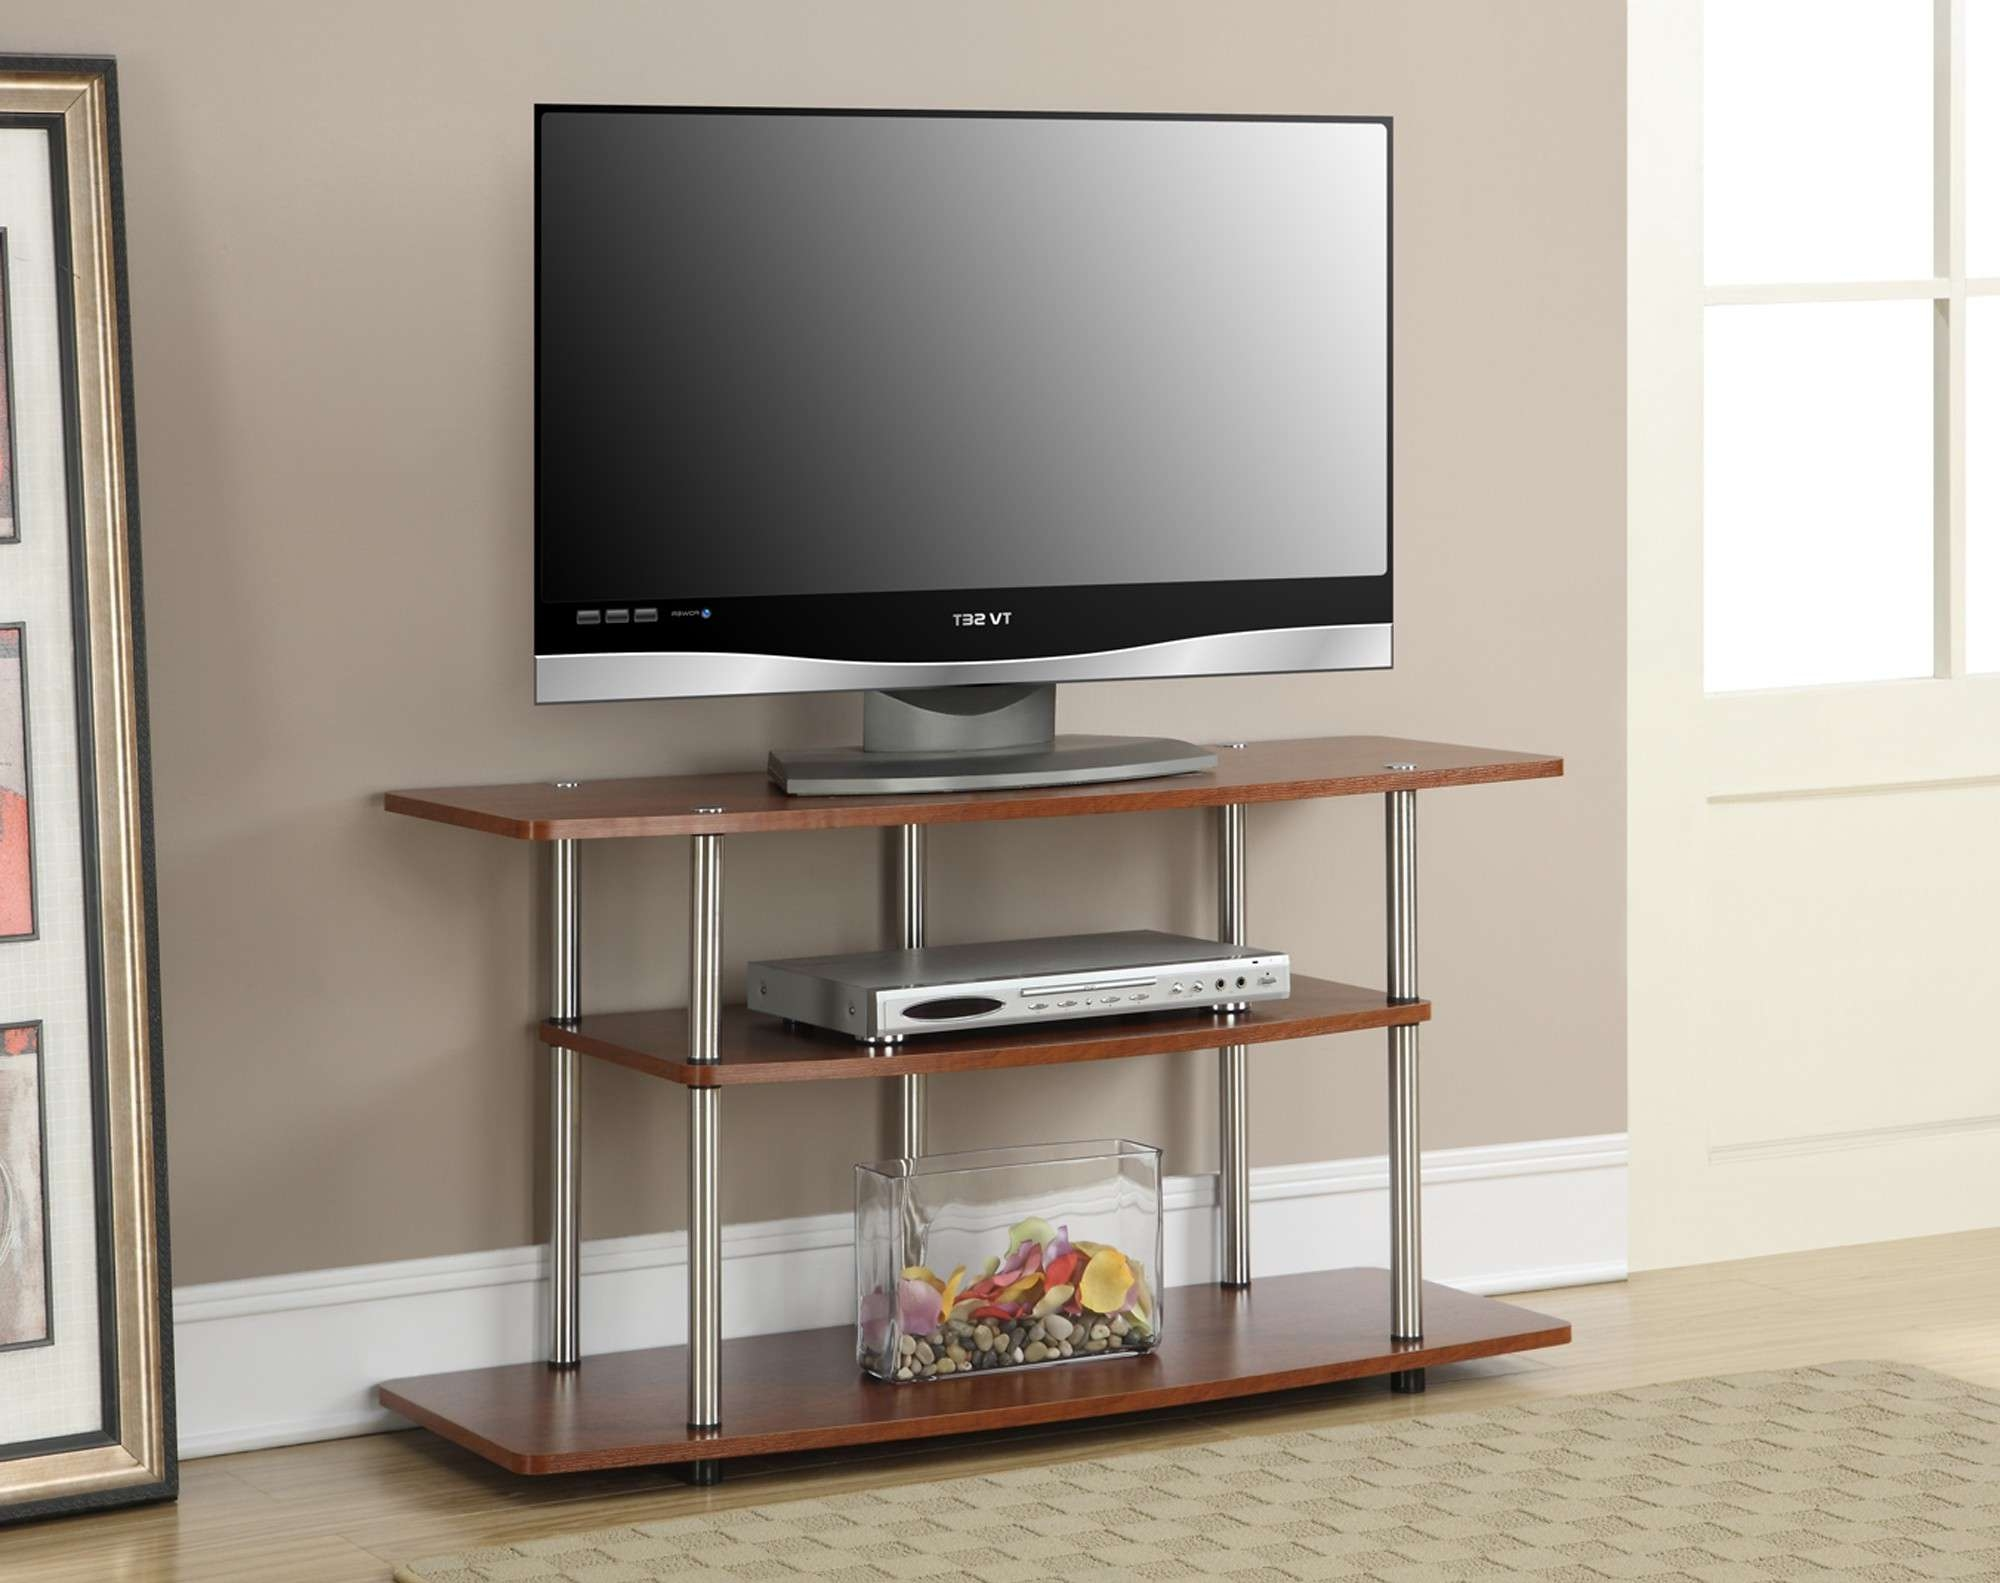 Furniture Fascinating Tv Stands For Flat Screens Bring Modern With With Modern Tv Stands For Flat Screens (View 7 of 15)